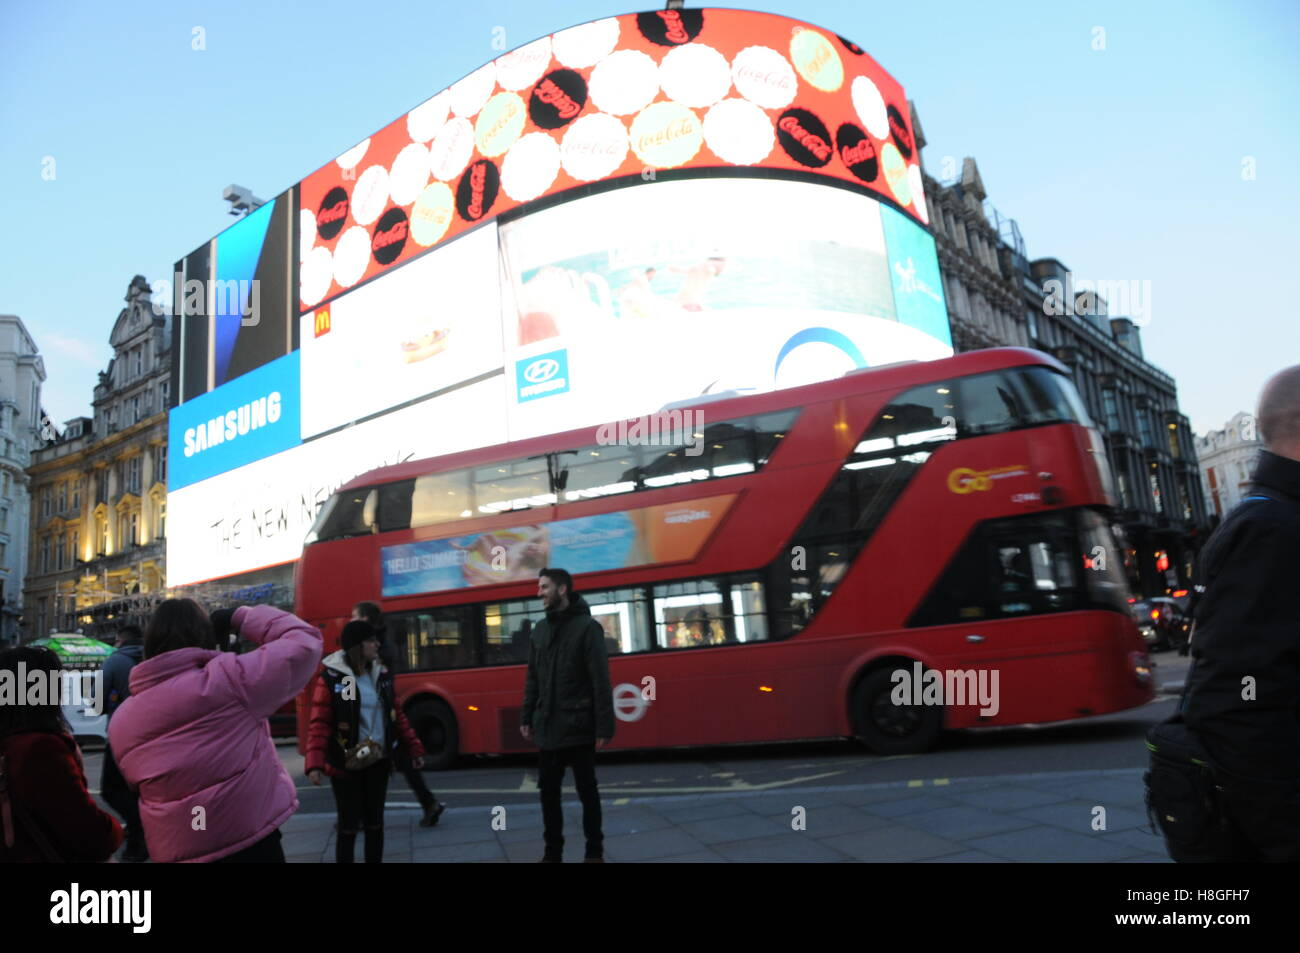 Double-decker bus in London's Piccadilly Circus. - Stock Image